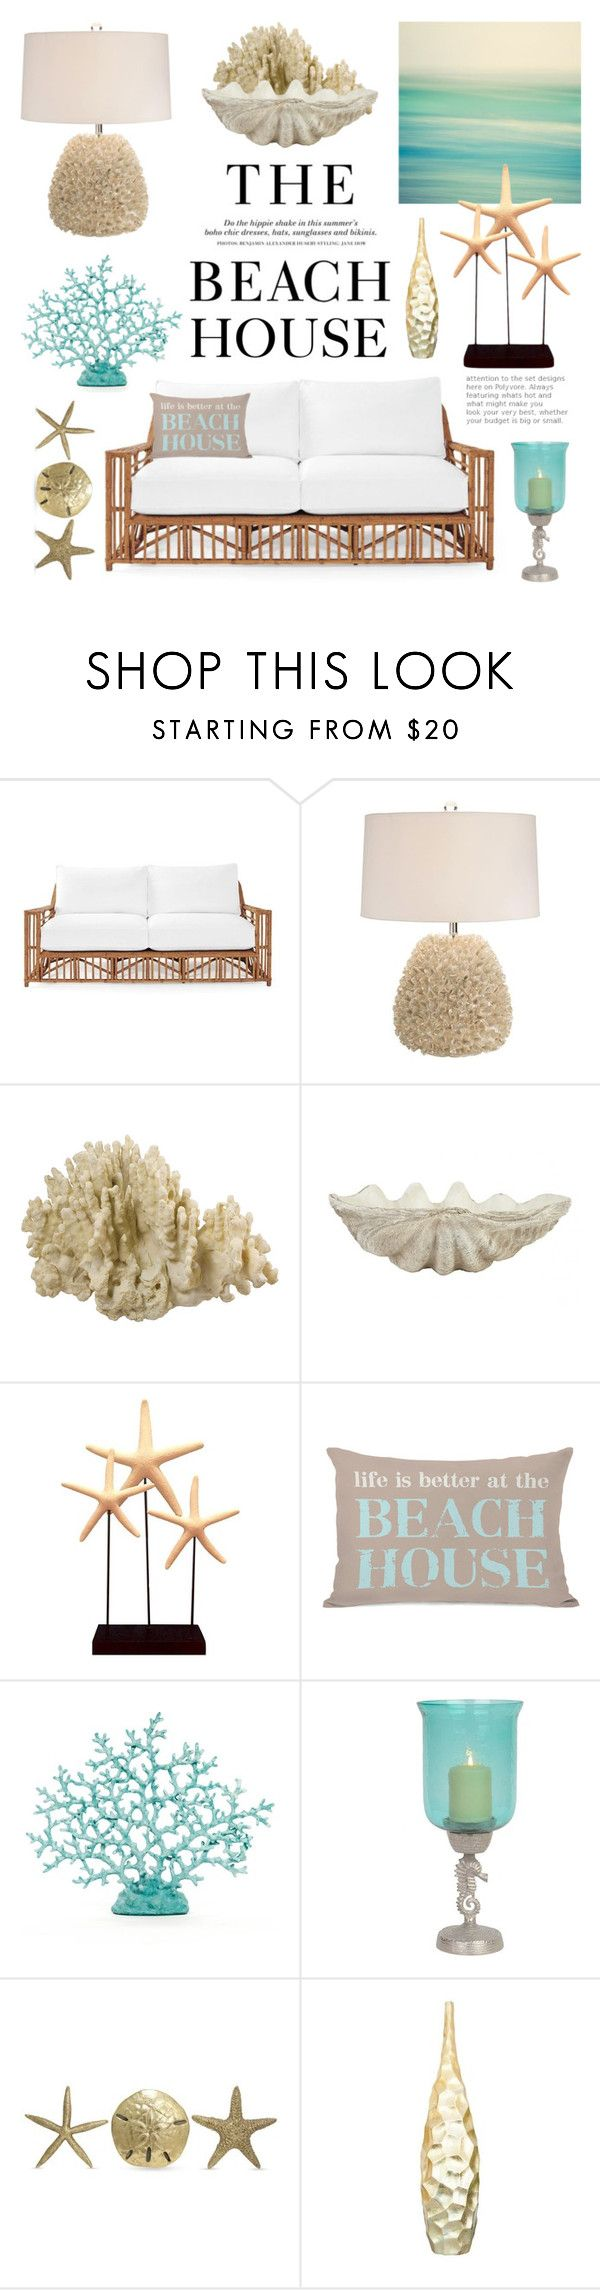 """The Beach House"" by lgb321 ❤ liked on Polyvore featuring interior, interiors, interior design, home, home decor, interior decorating, H&M, Serena & Lily, Jayson Home and Fetco                                                                                                                                                                                 More"